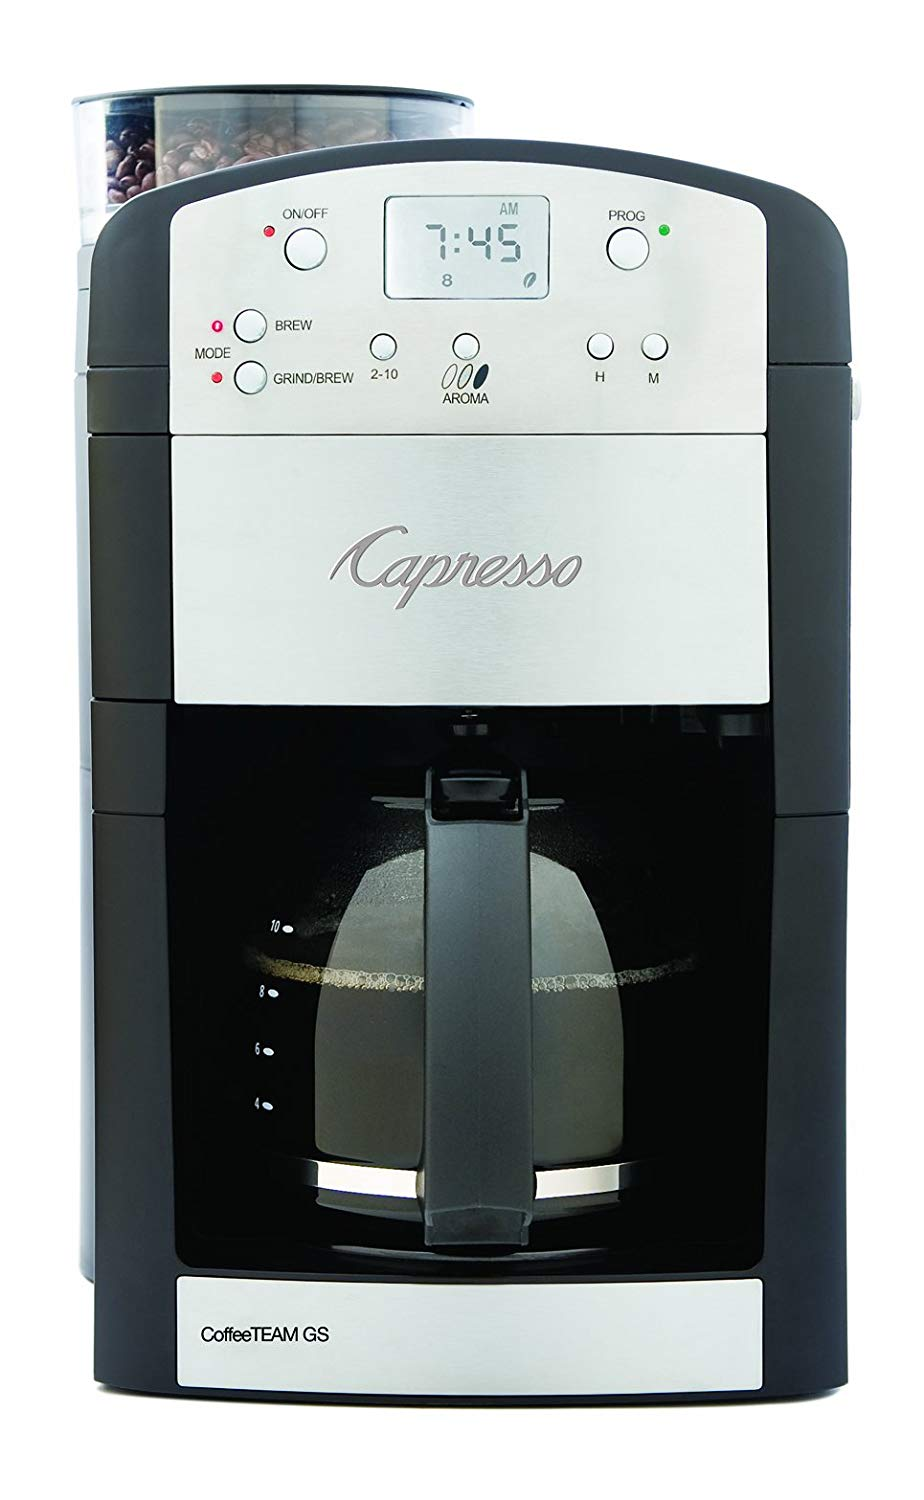 Coffee-Maker-With-Grinder-Capresso-Bur-Grinder